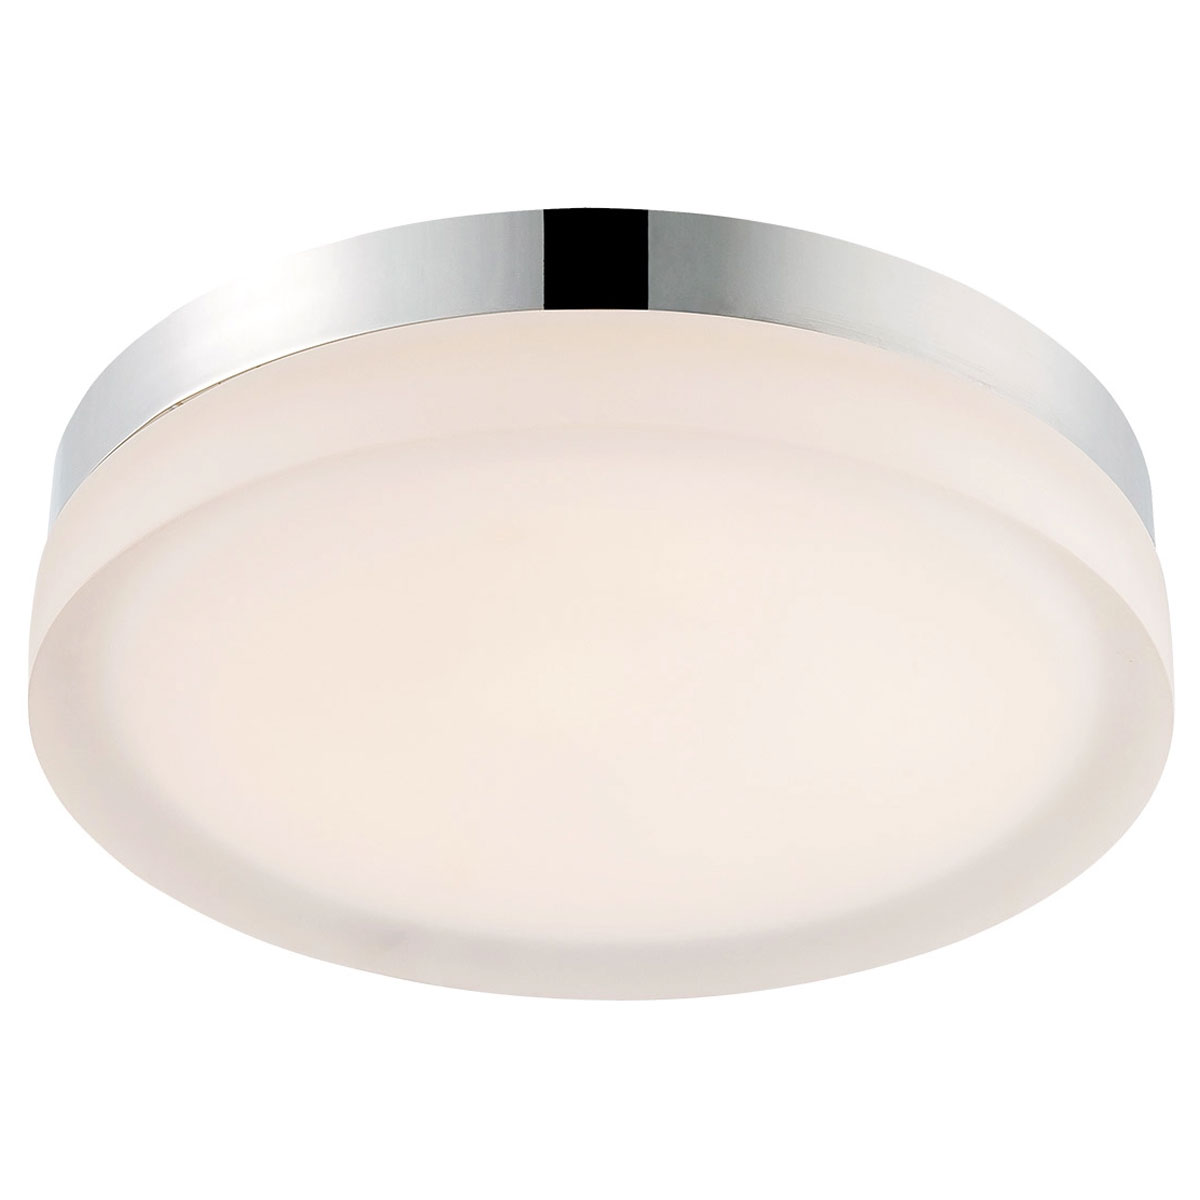 Slice Round Wall Ceiling Light By Dweled Wac Lighting